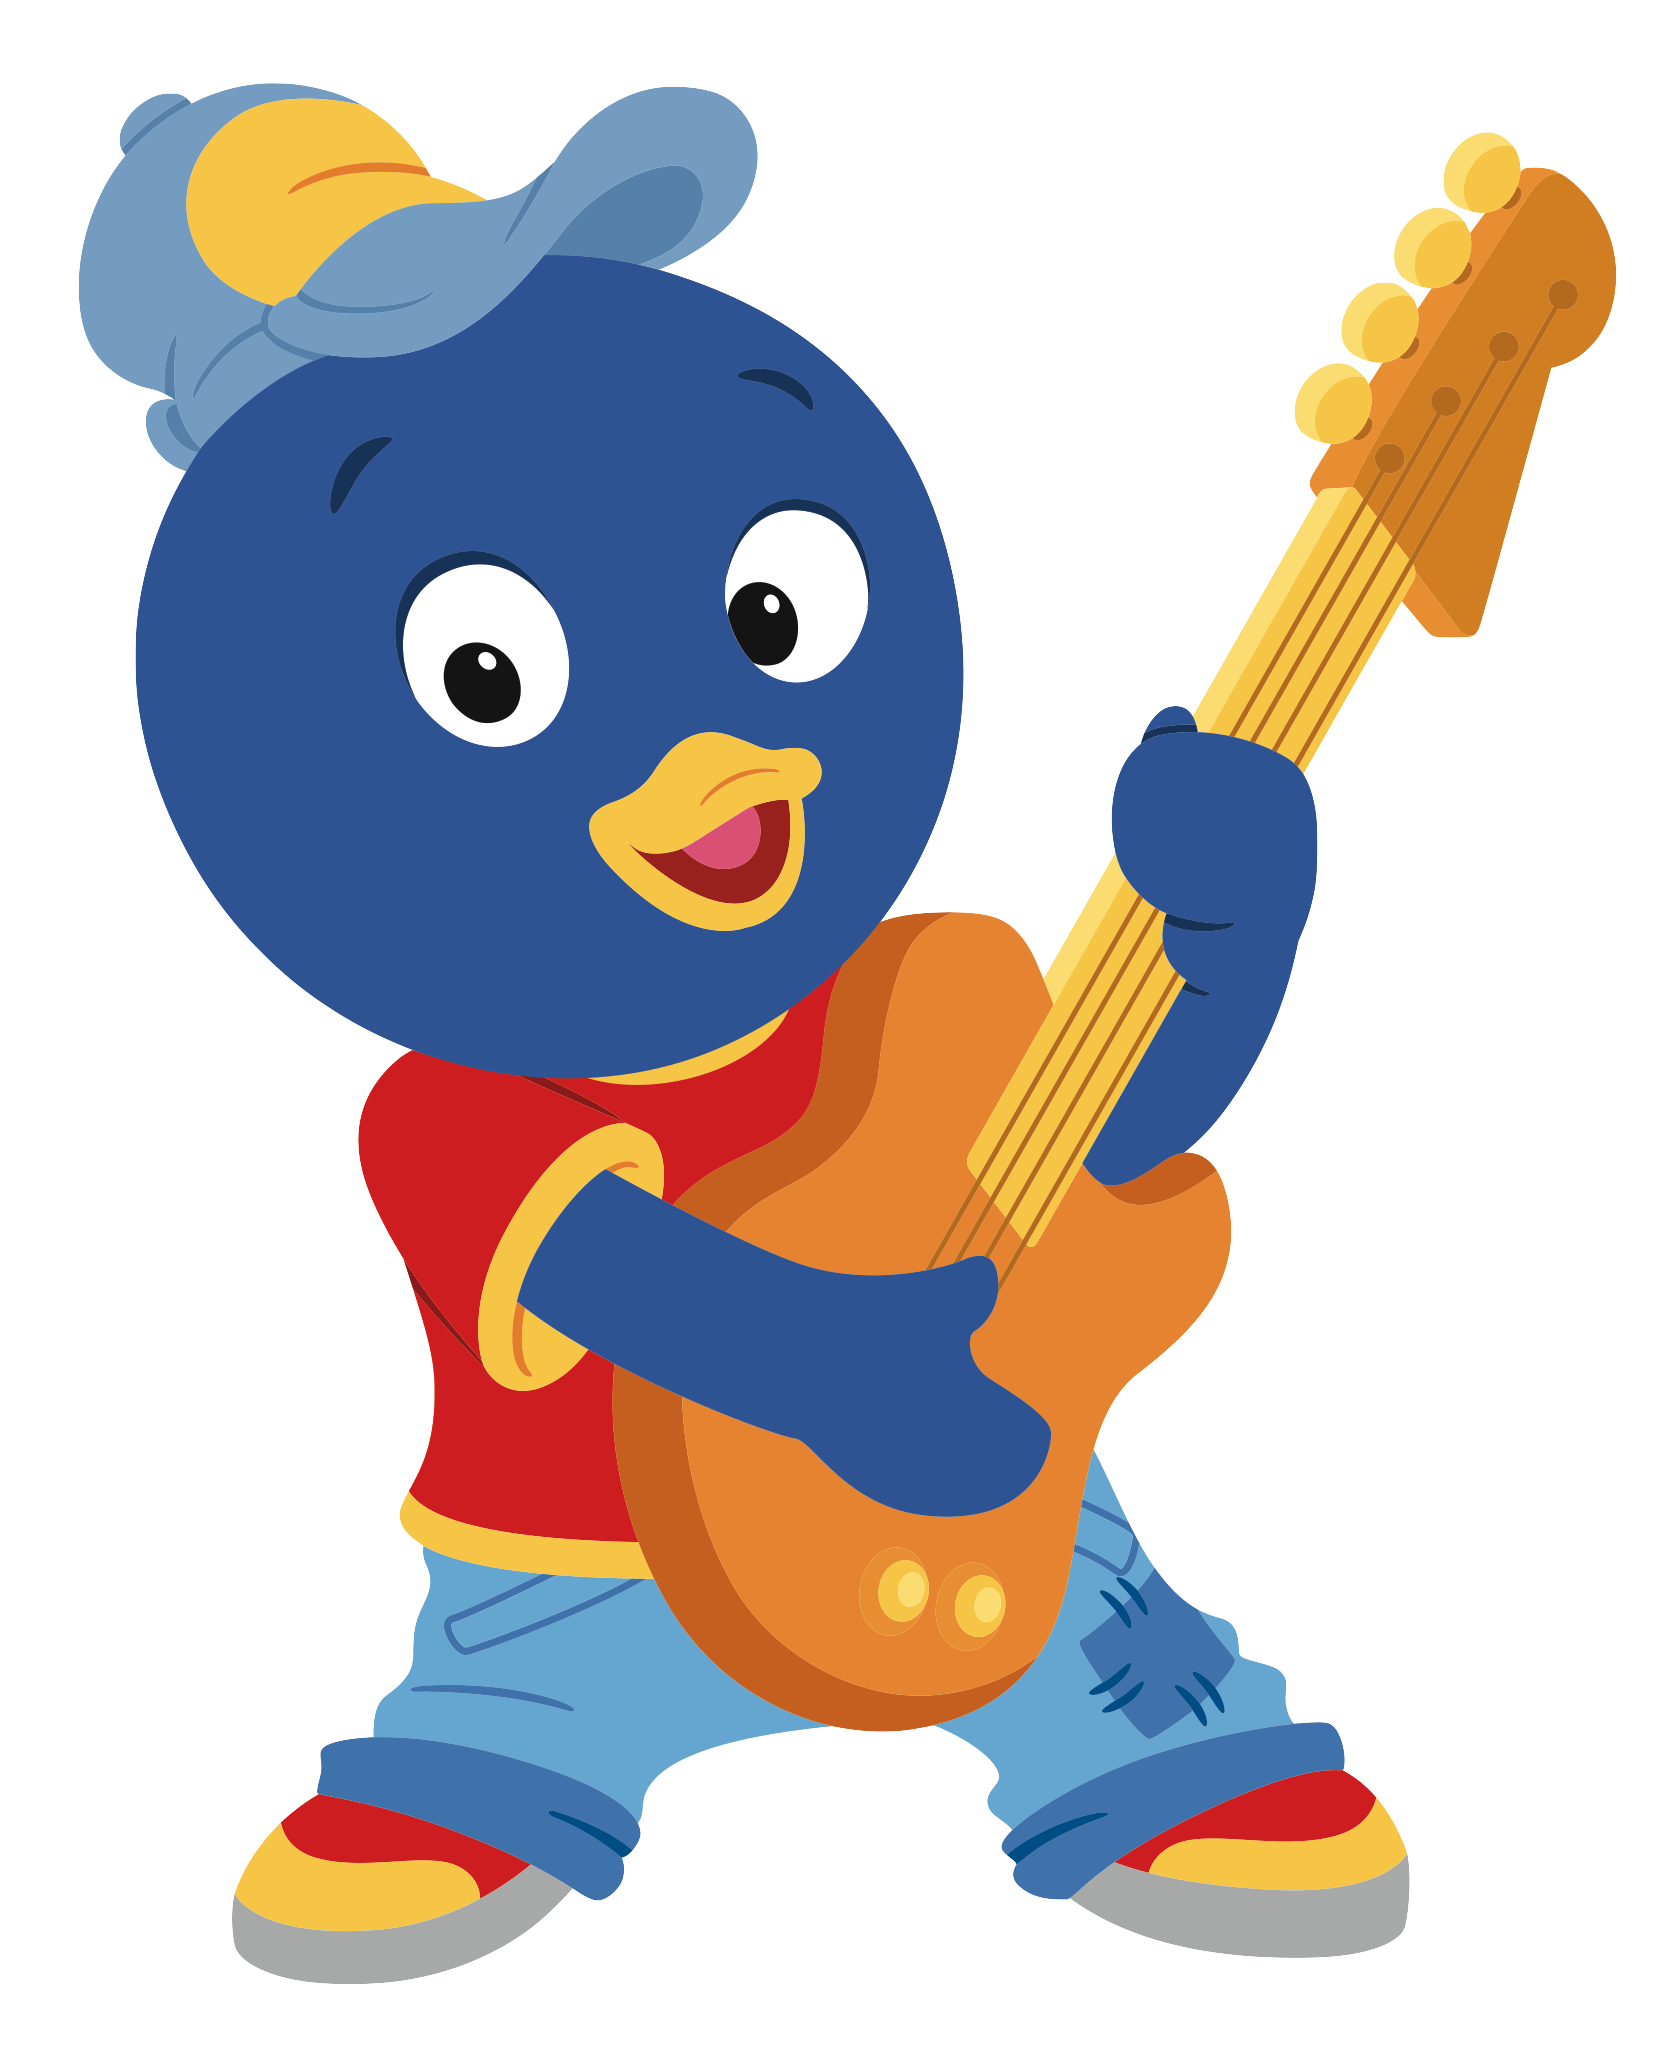 Image - The Backyardigans Let's Play Music! DJ Pablo 2.png | The ...